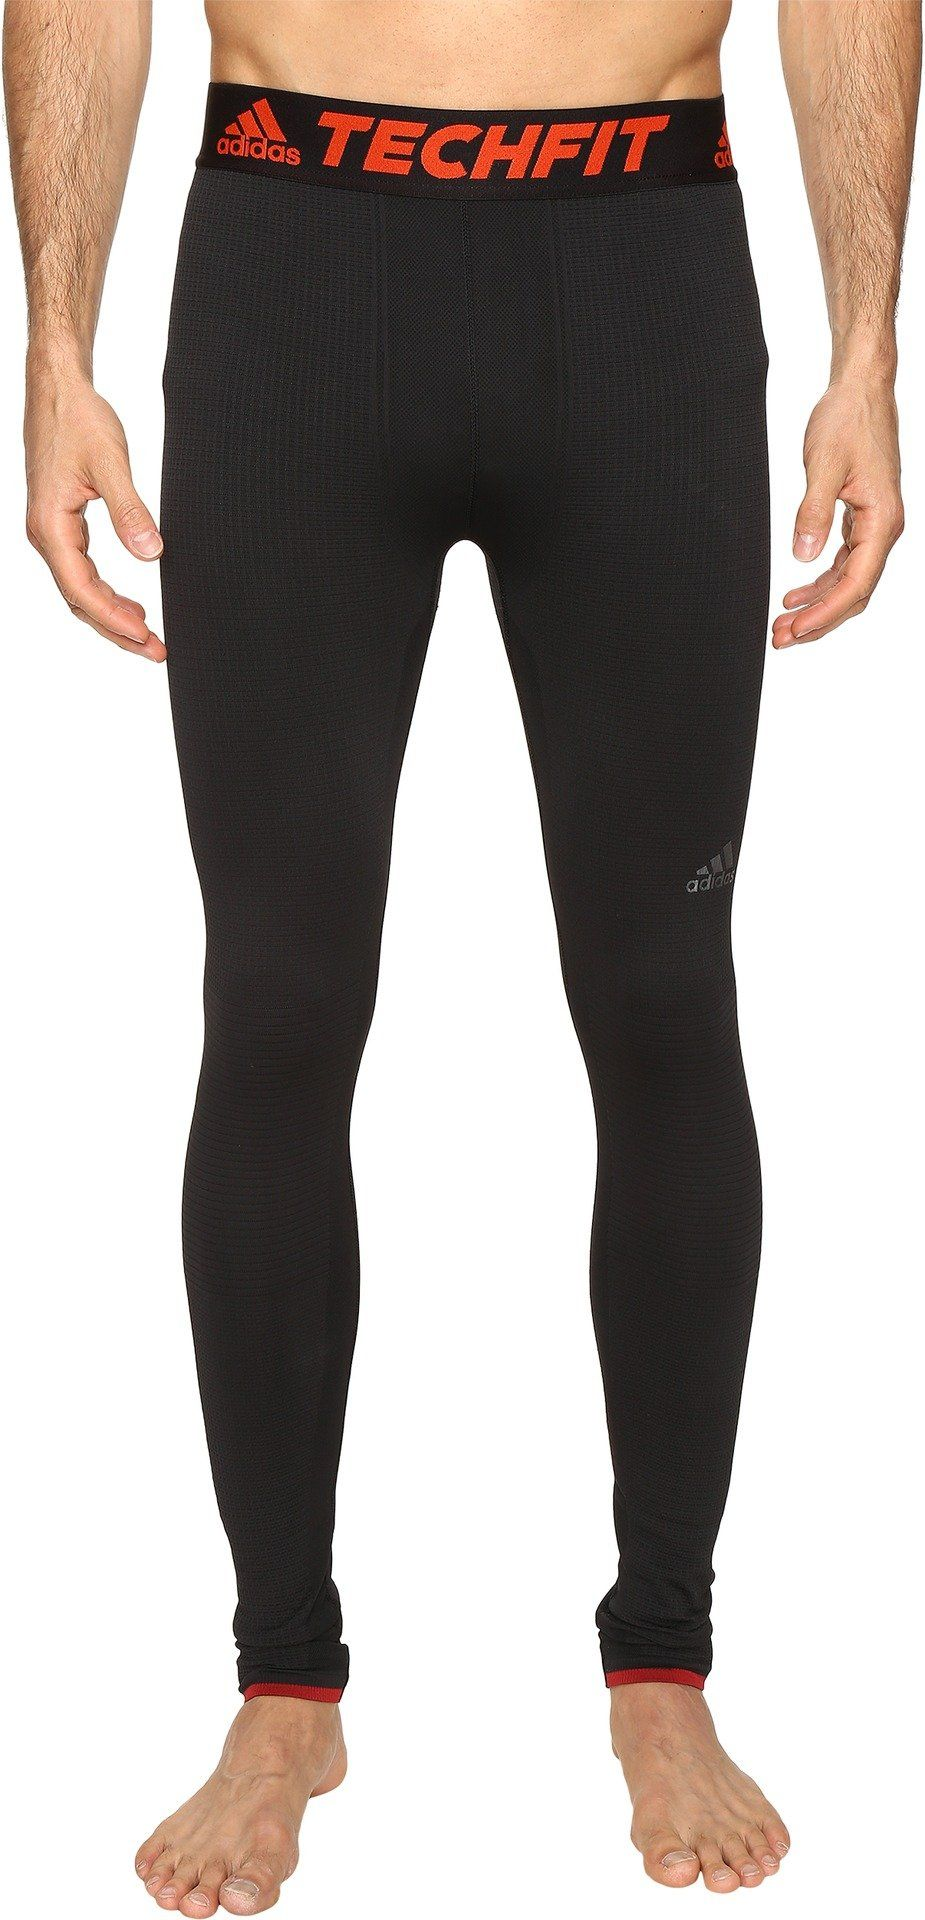 cfc227430d922 adidas Men's Training TechFit Baselayer Primeknit Climaheat Tights, Black,  Small. 26